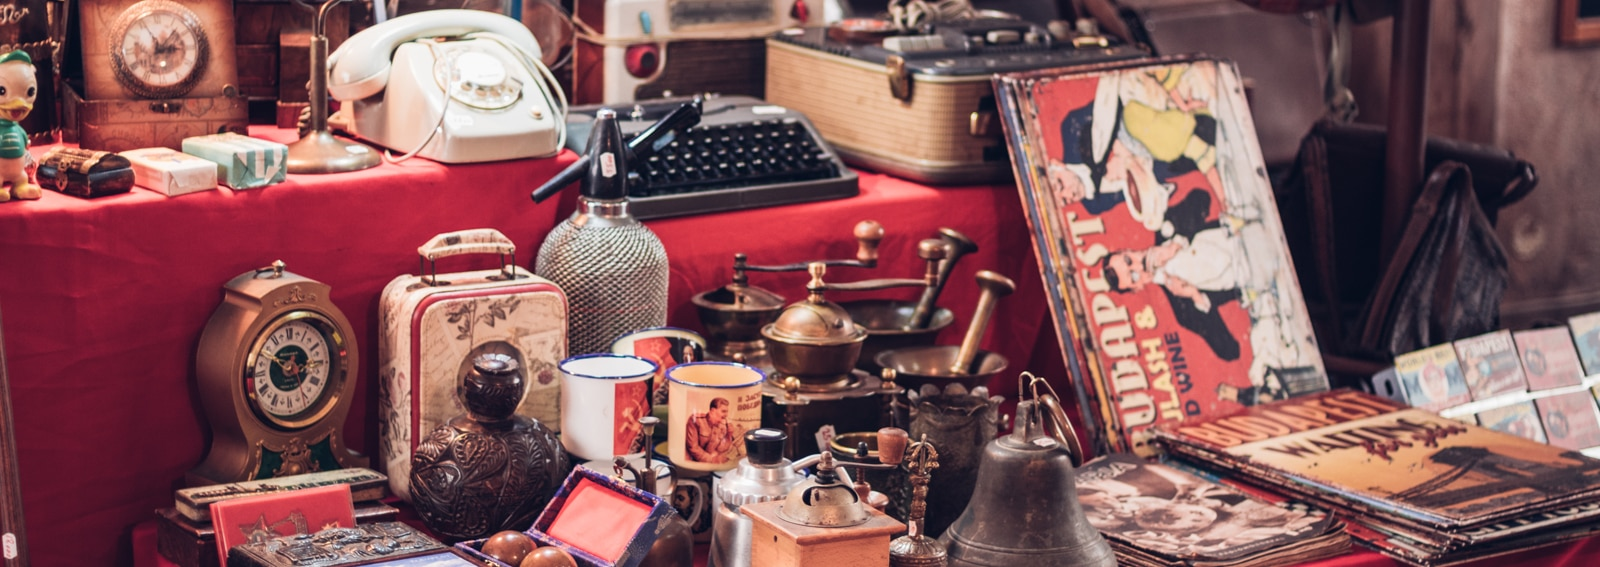 Small group of vintage objects in a flea market